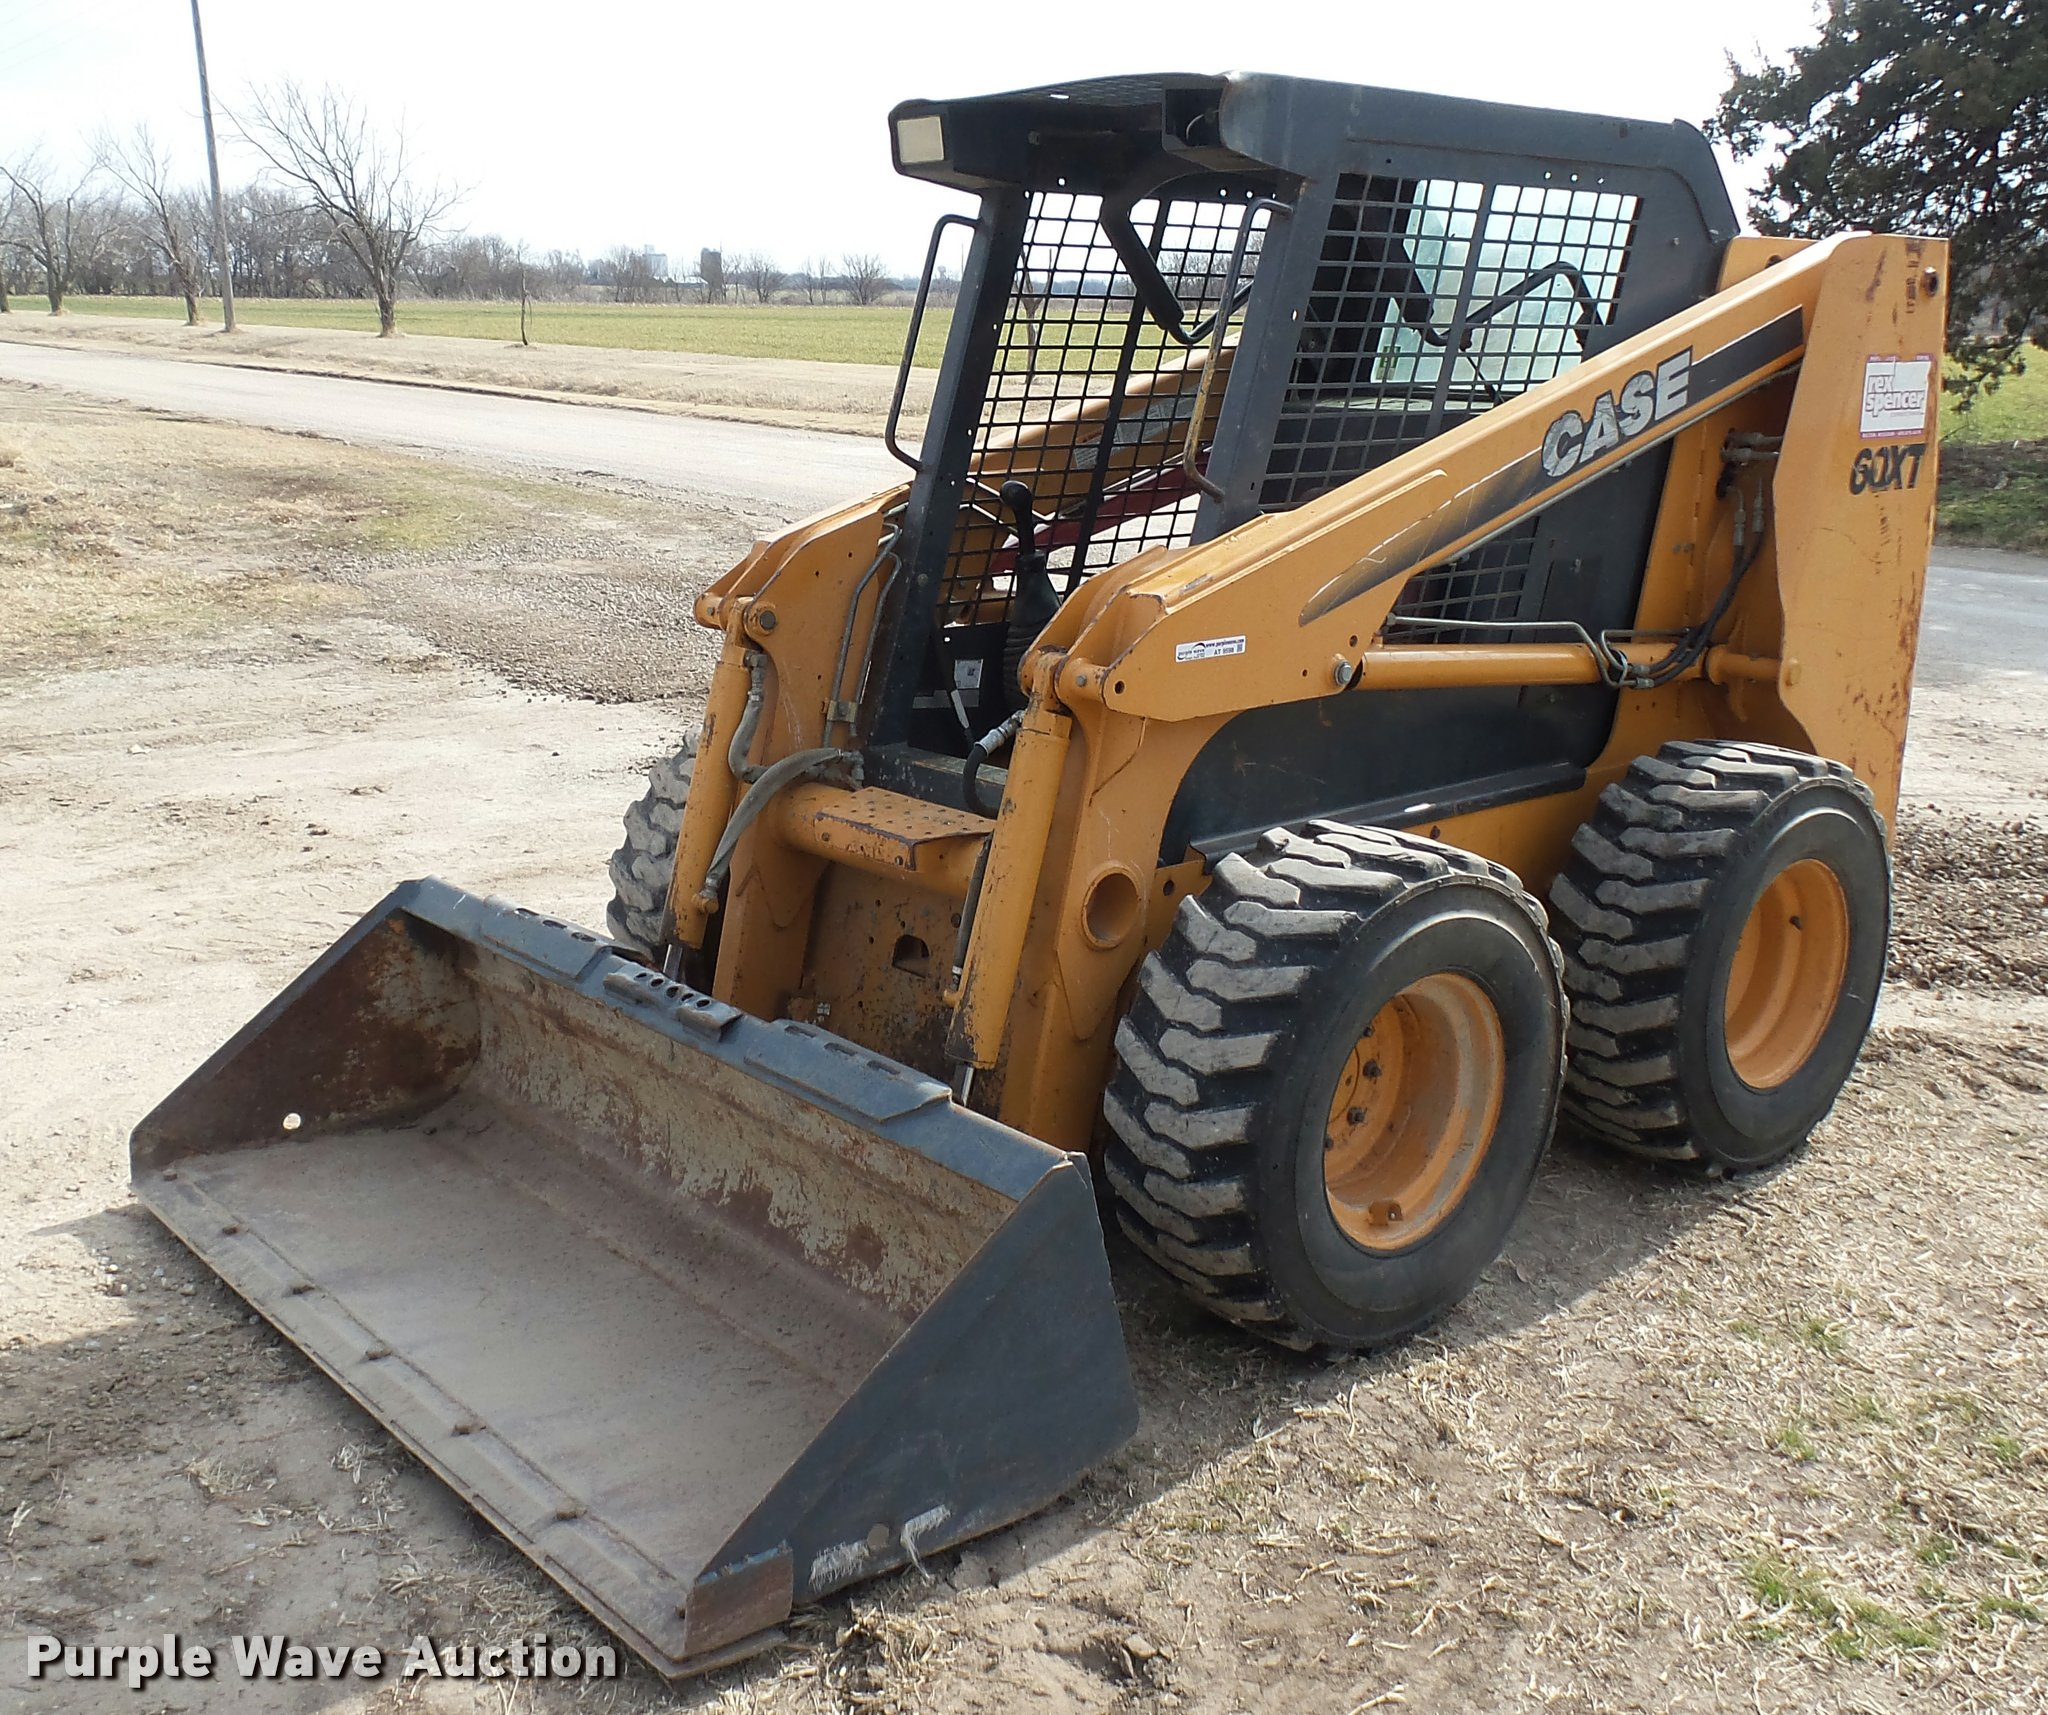 2003 Case 60XT skid steer | Item AT9598 | SOLD! March 1 Vehi